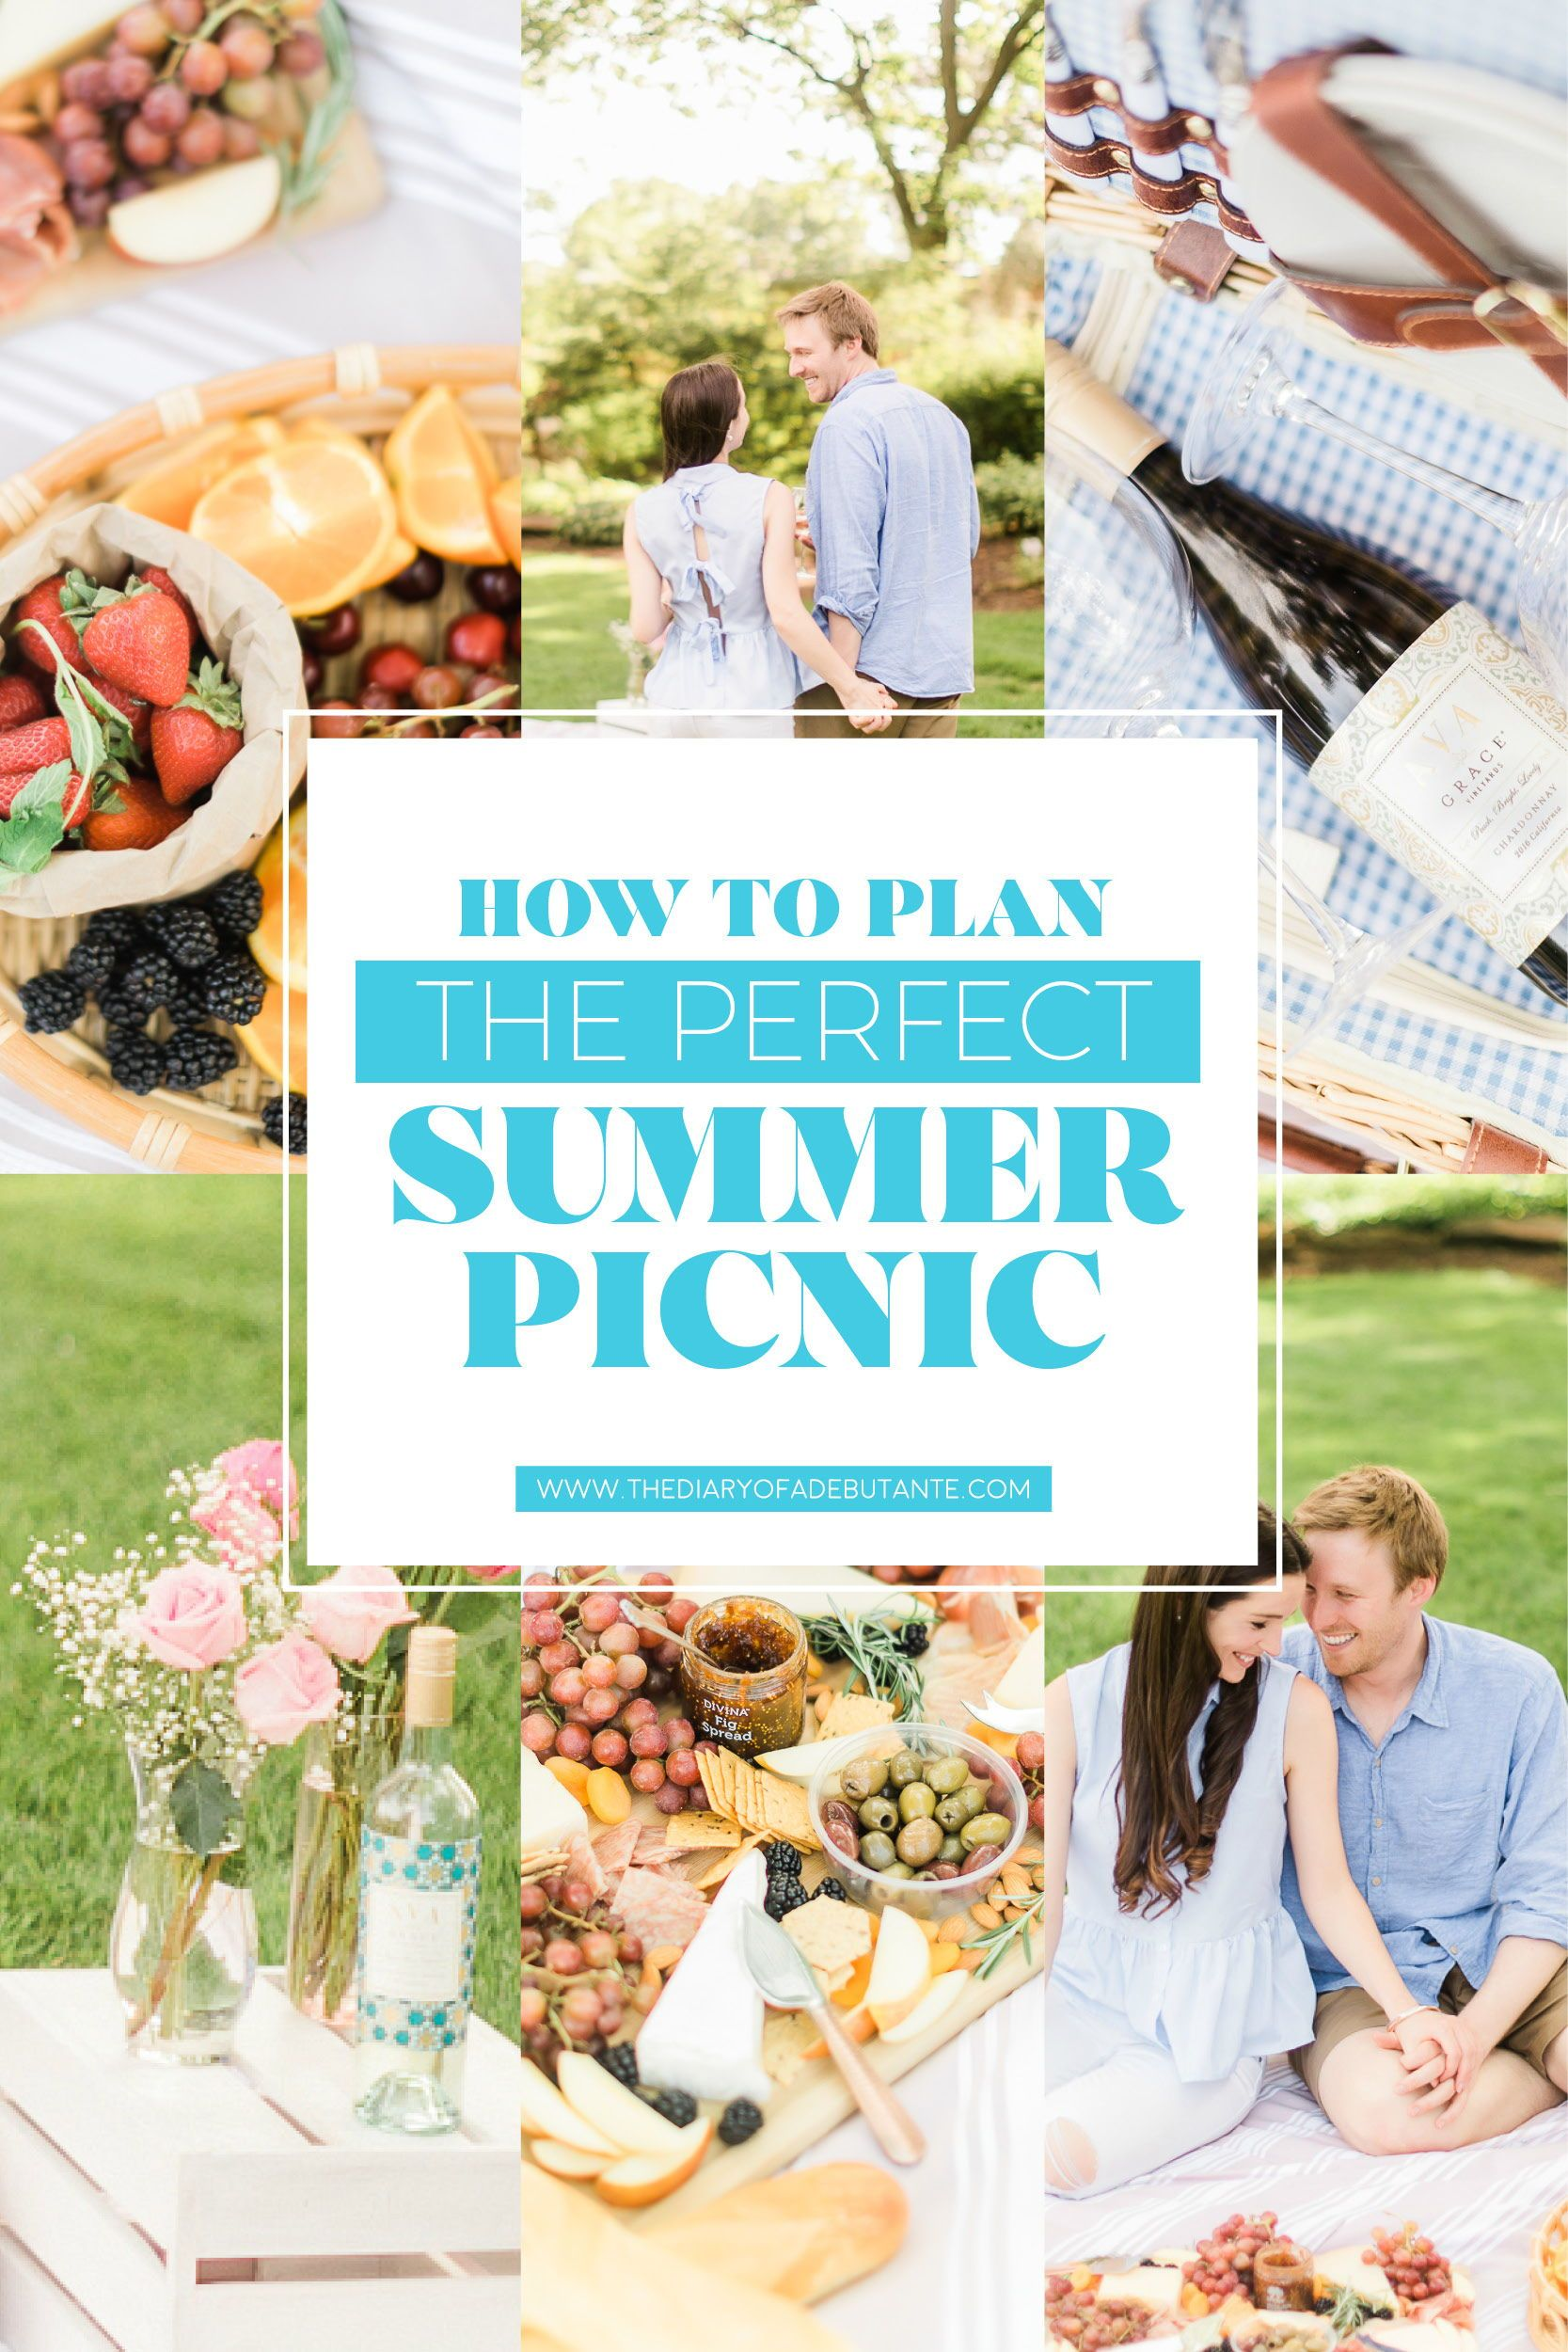 This Date Night Idea Post Features A Handful Of Romantic Summer Picnic Ideas For Him Including Picnic Food Ideas The Best Ava Grace Wines For Spring And